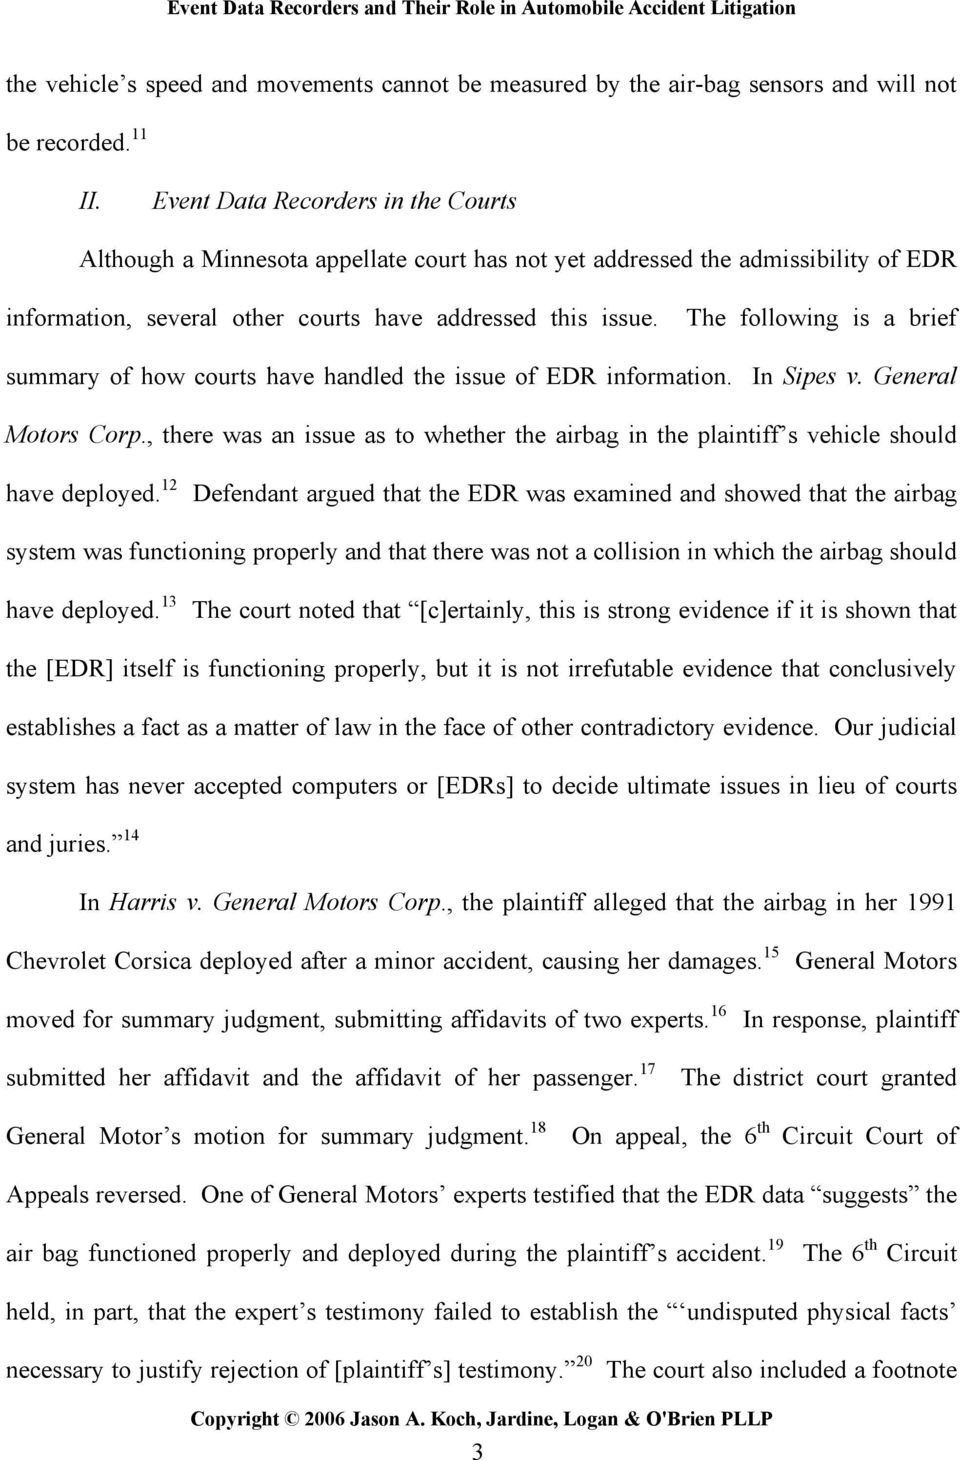 The following is a brief summary of how courts have handled the issue of EDR information. In Sipes v. General Motors Corp.